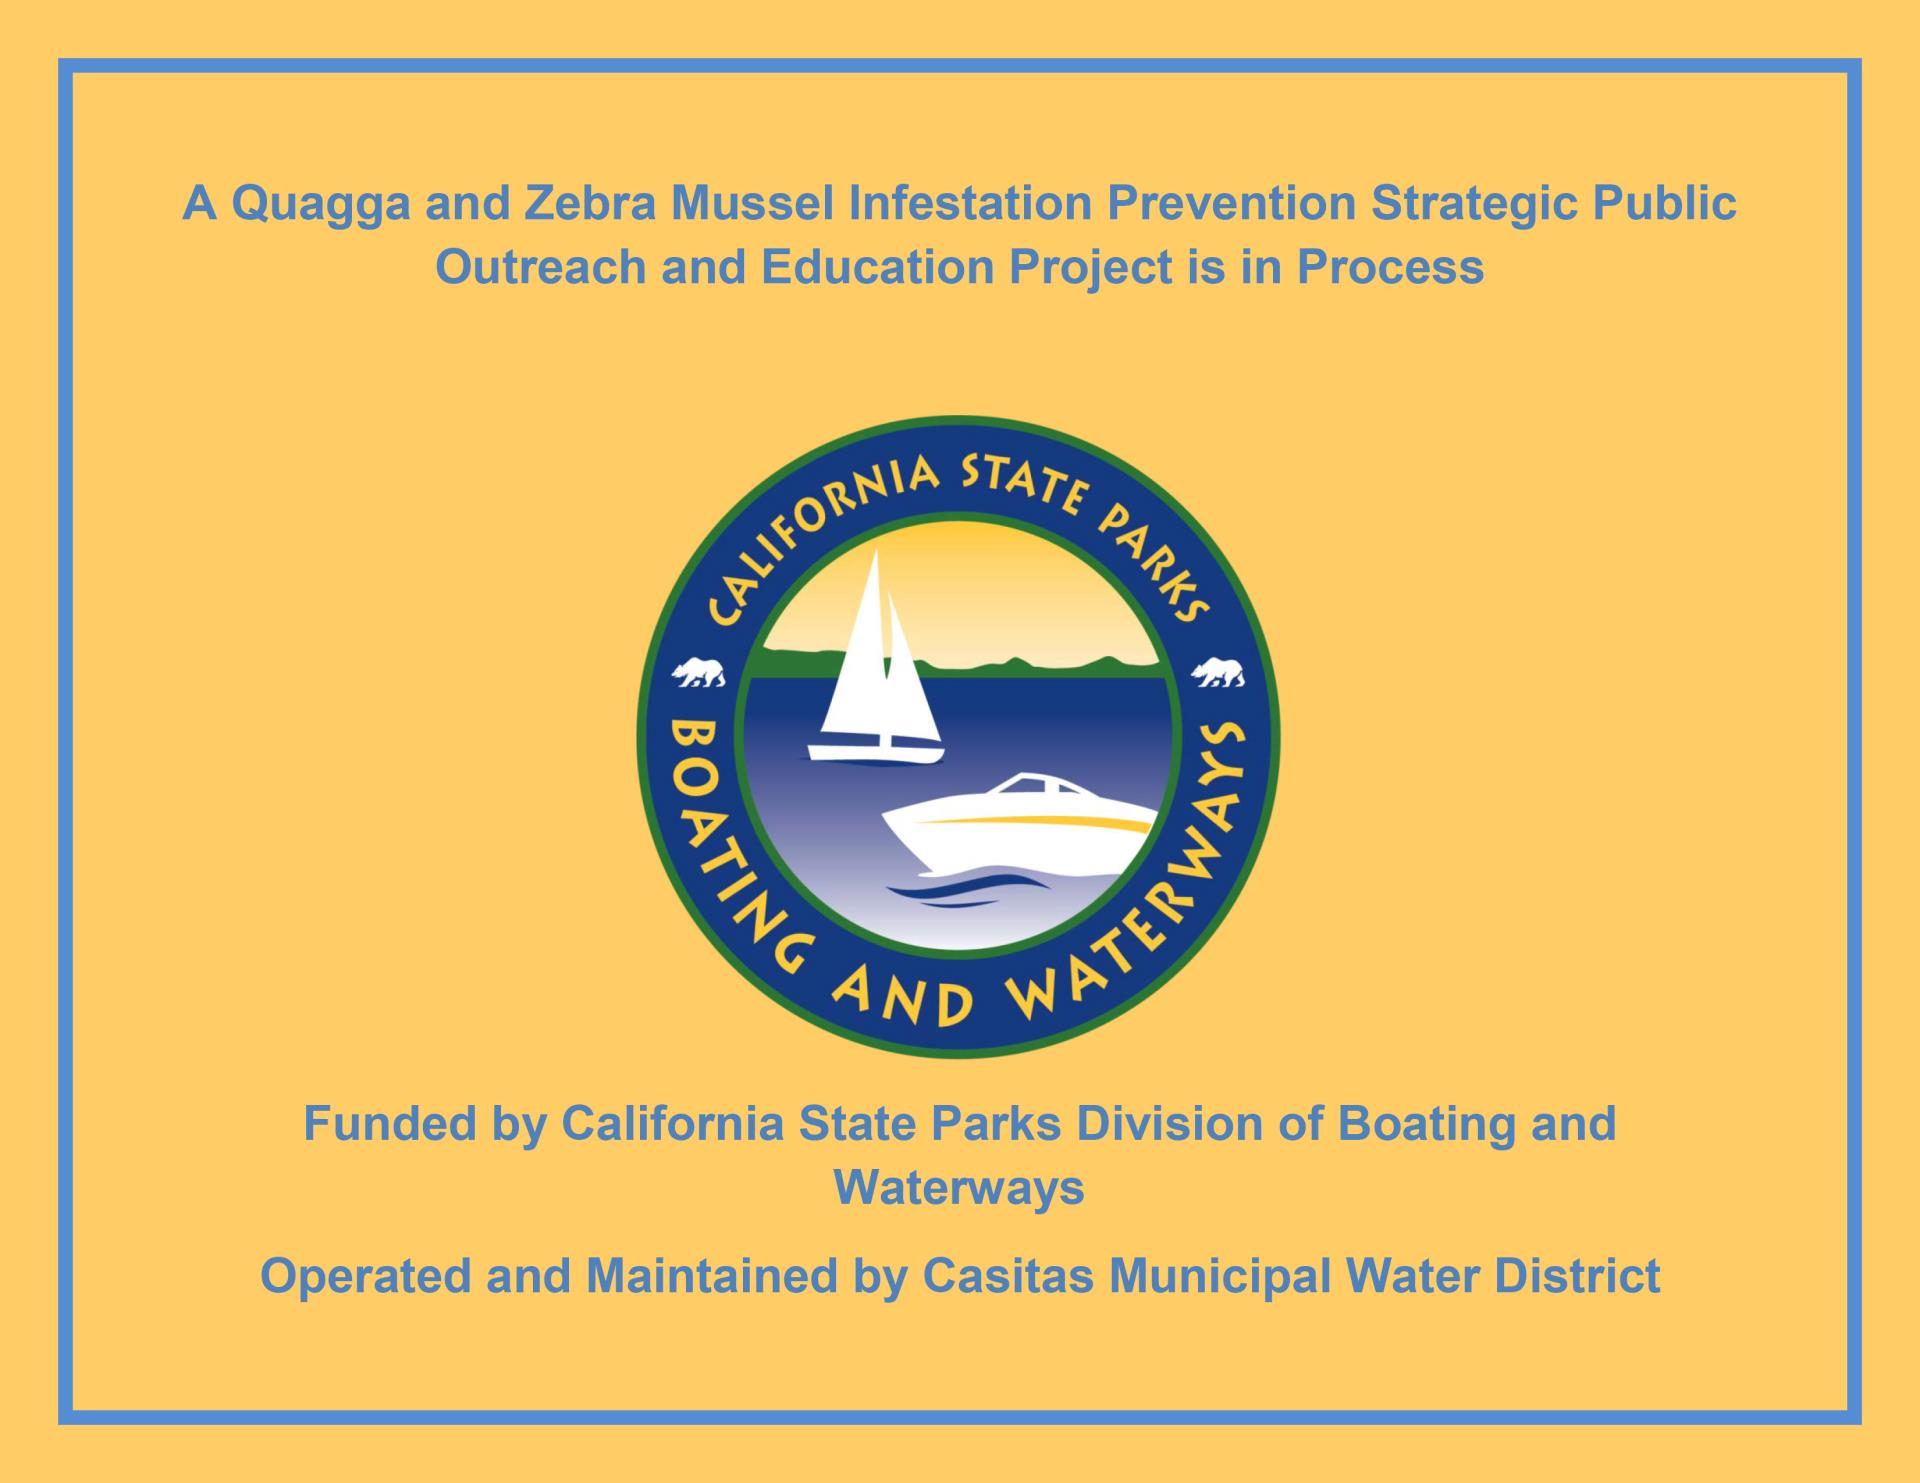 A Quagga and Zebra Mussel Infestation Prevention Strategic Public Outreach and Education Grant (1)